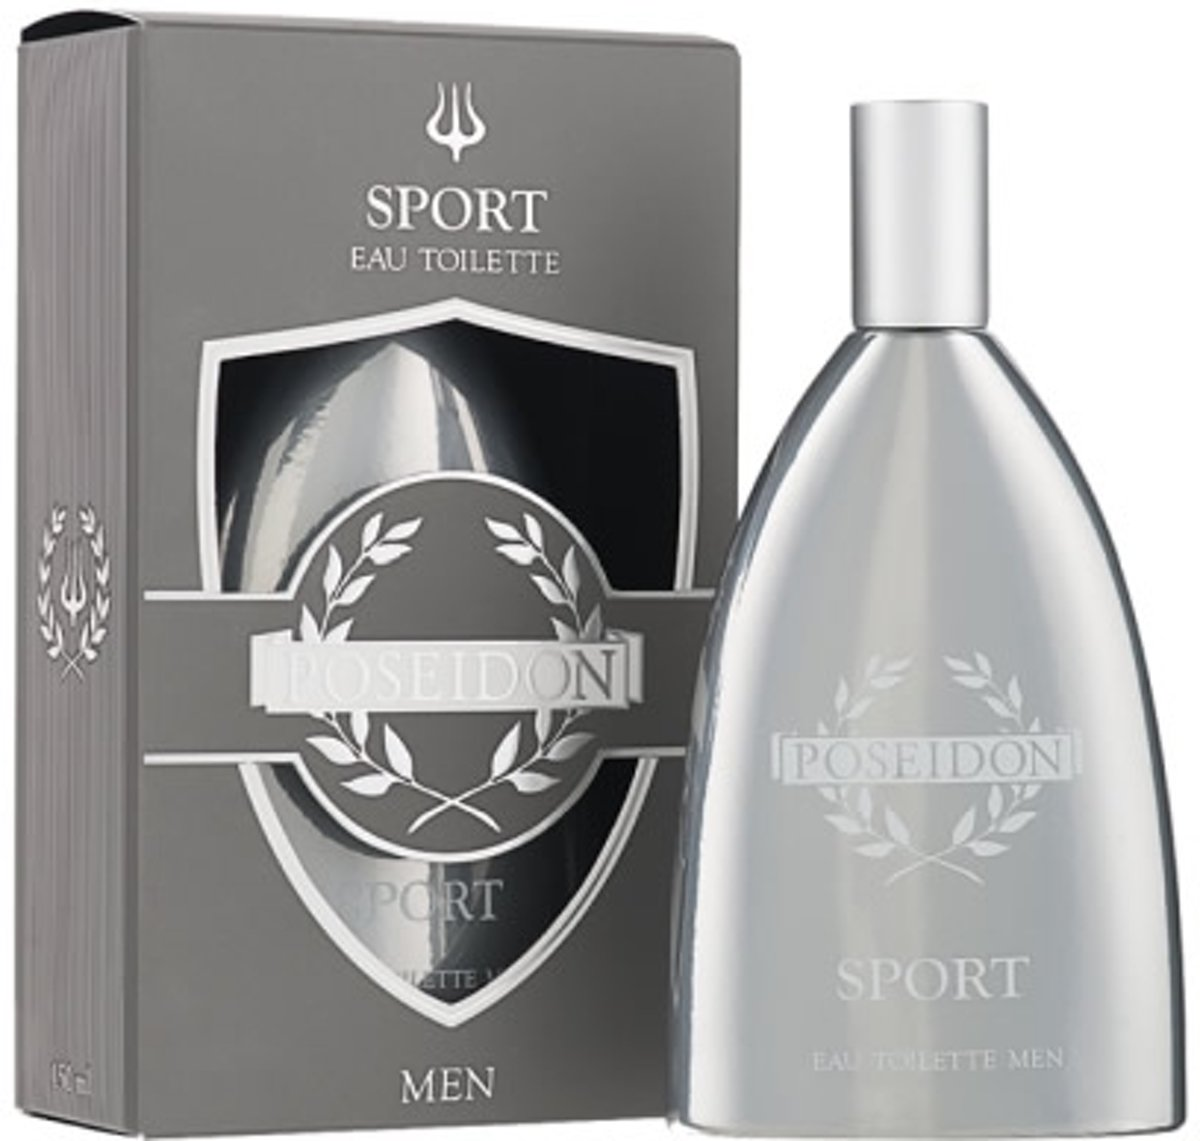 Instituto Espanol Posseidon Sport Men Eau De Toilette Spray 150ml